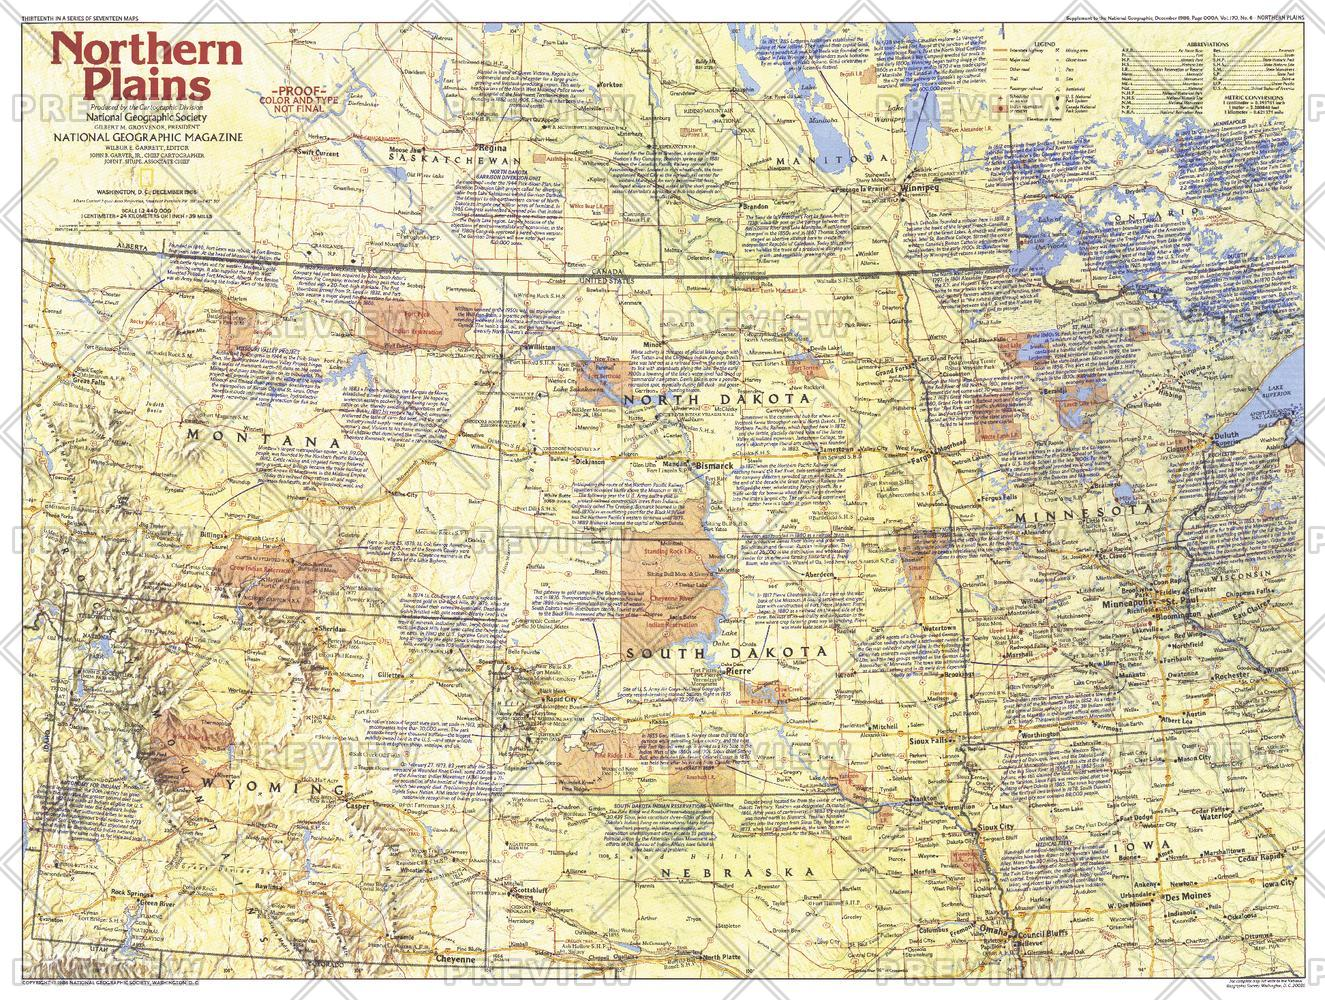 Northern Plains Map Side 1 - Published 1986